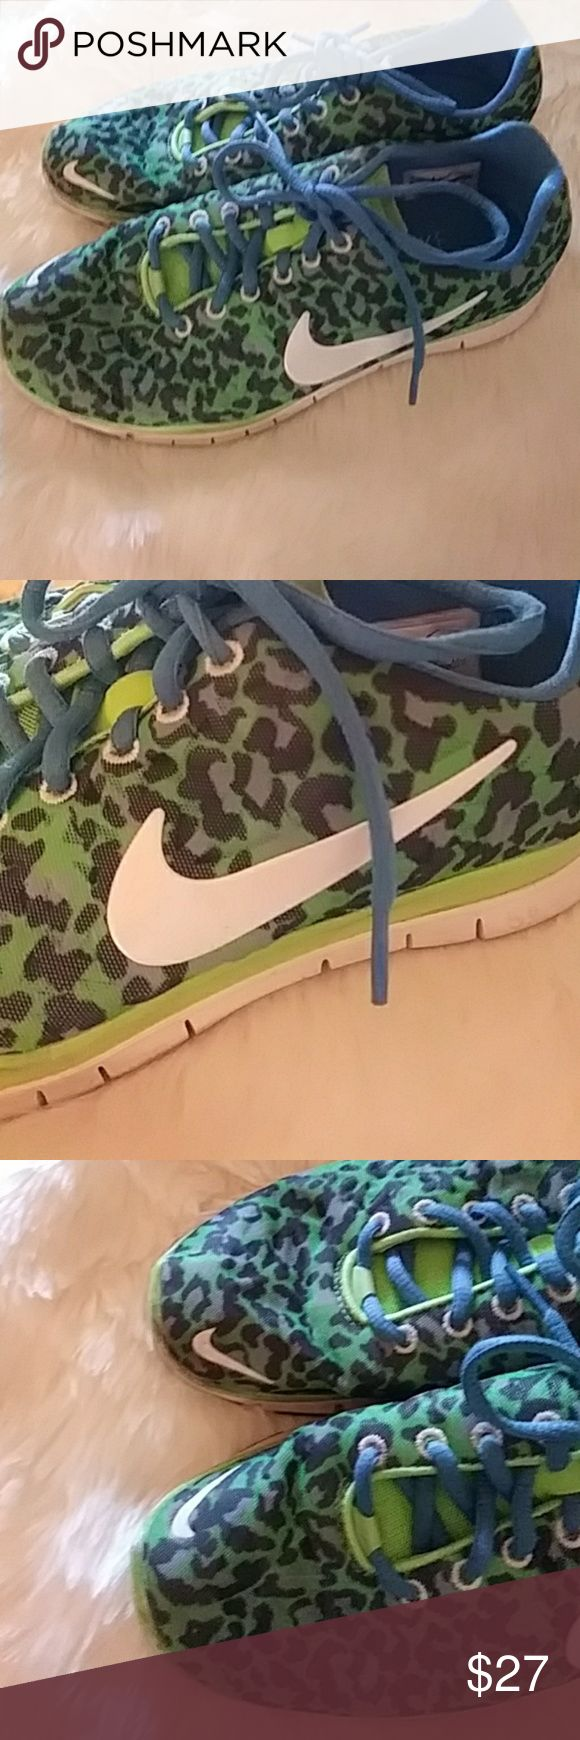 NIKE Leopard shoe used but in good condition Nike Shoes Sneakers